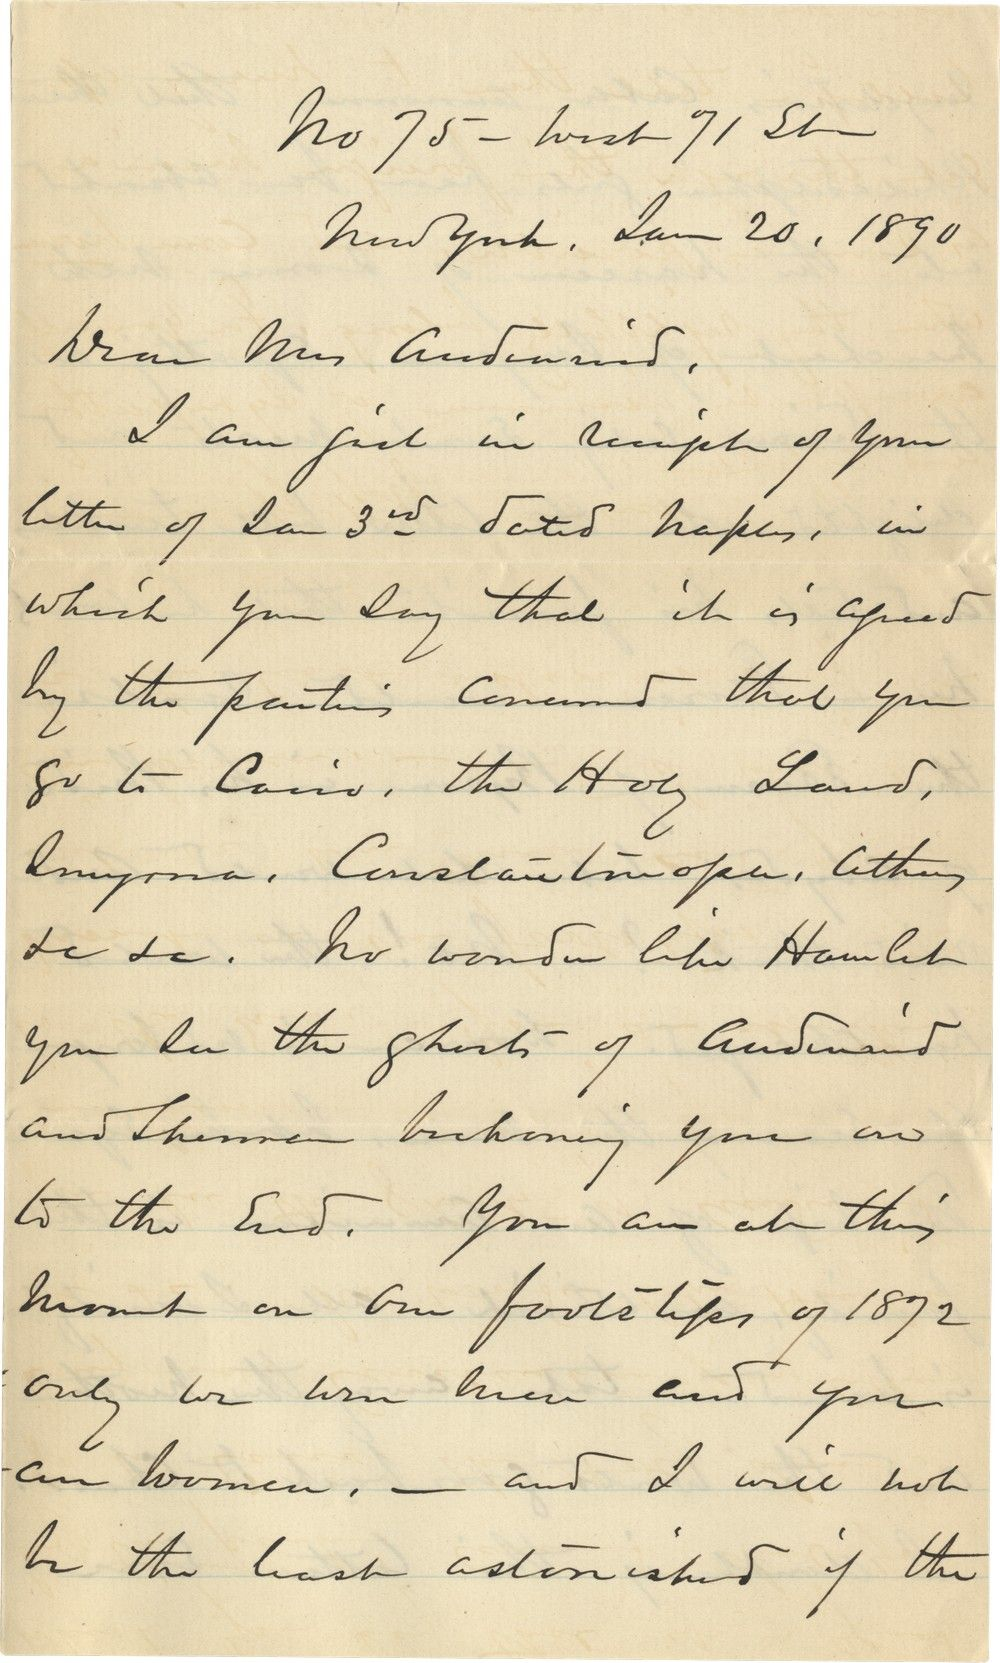 William T. Sherman Recalls His Trip to the Levant, and Teases His Lady Friend About Harem Life